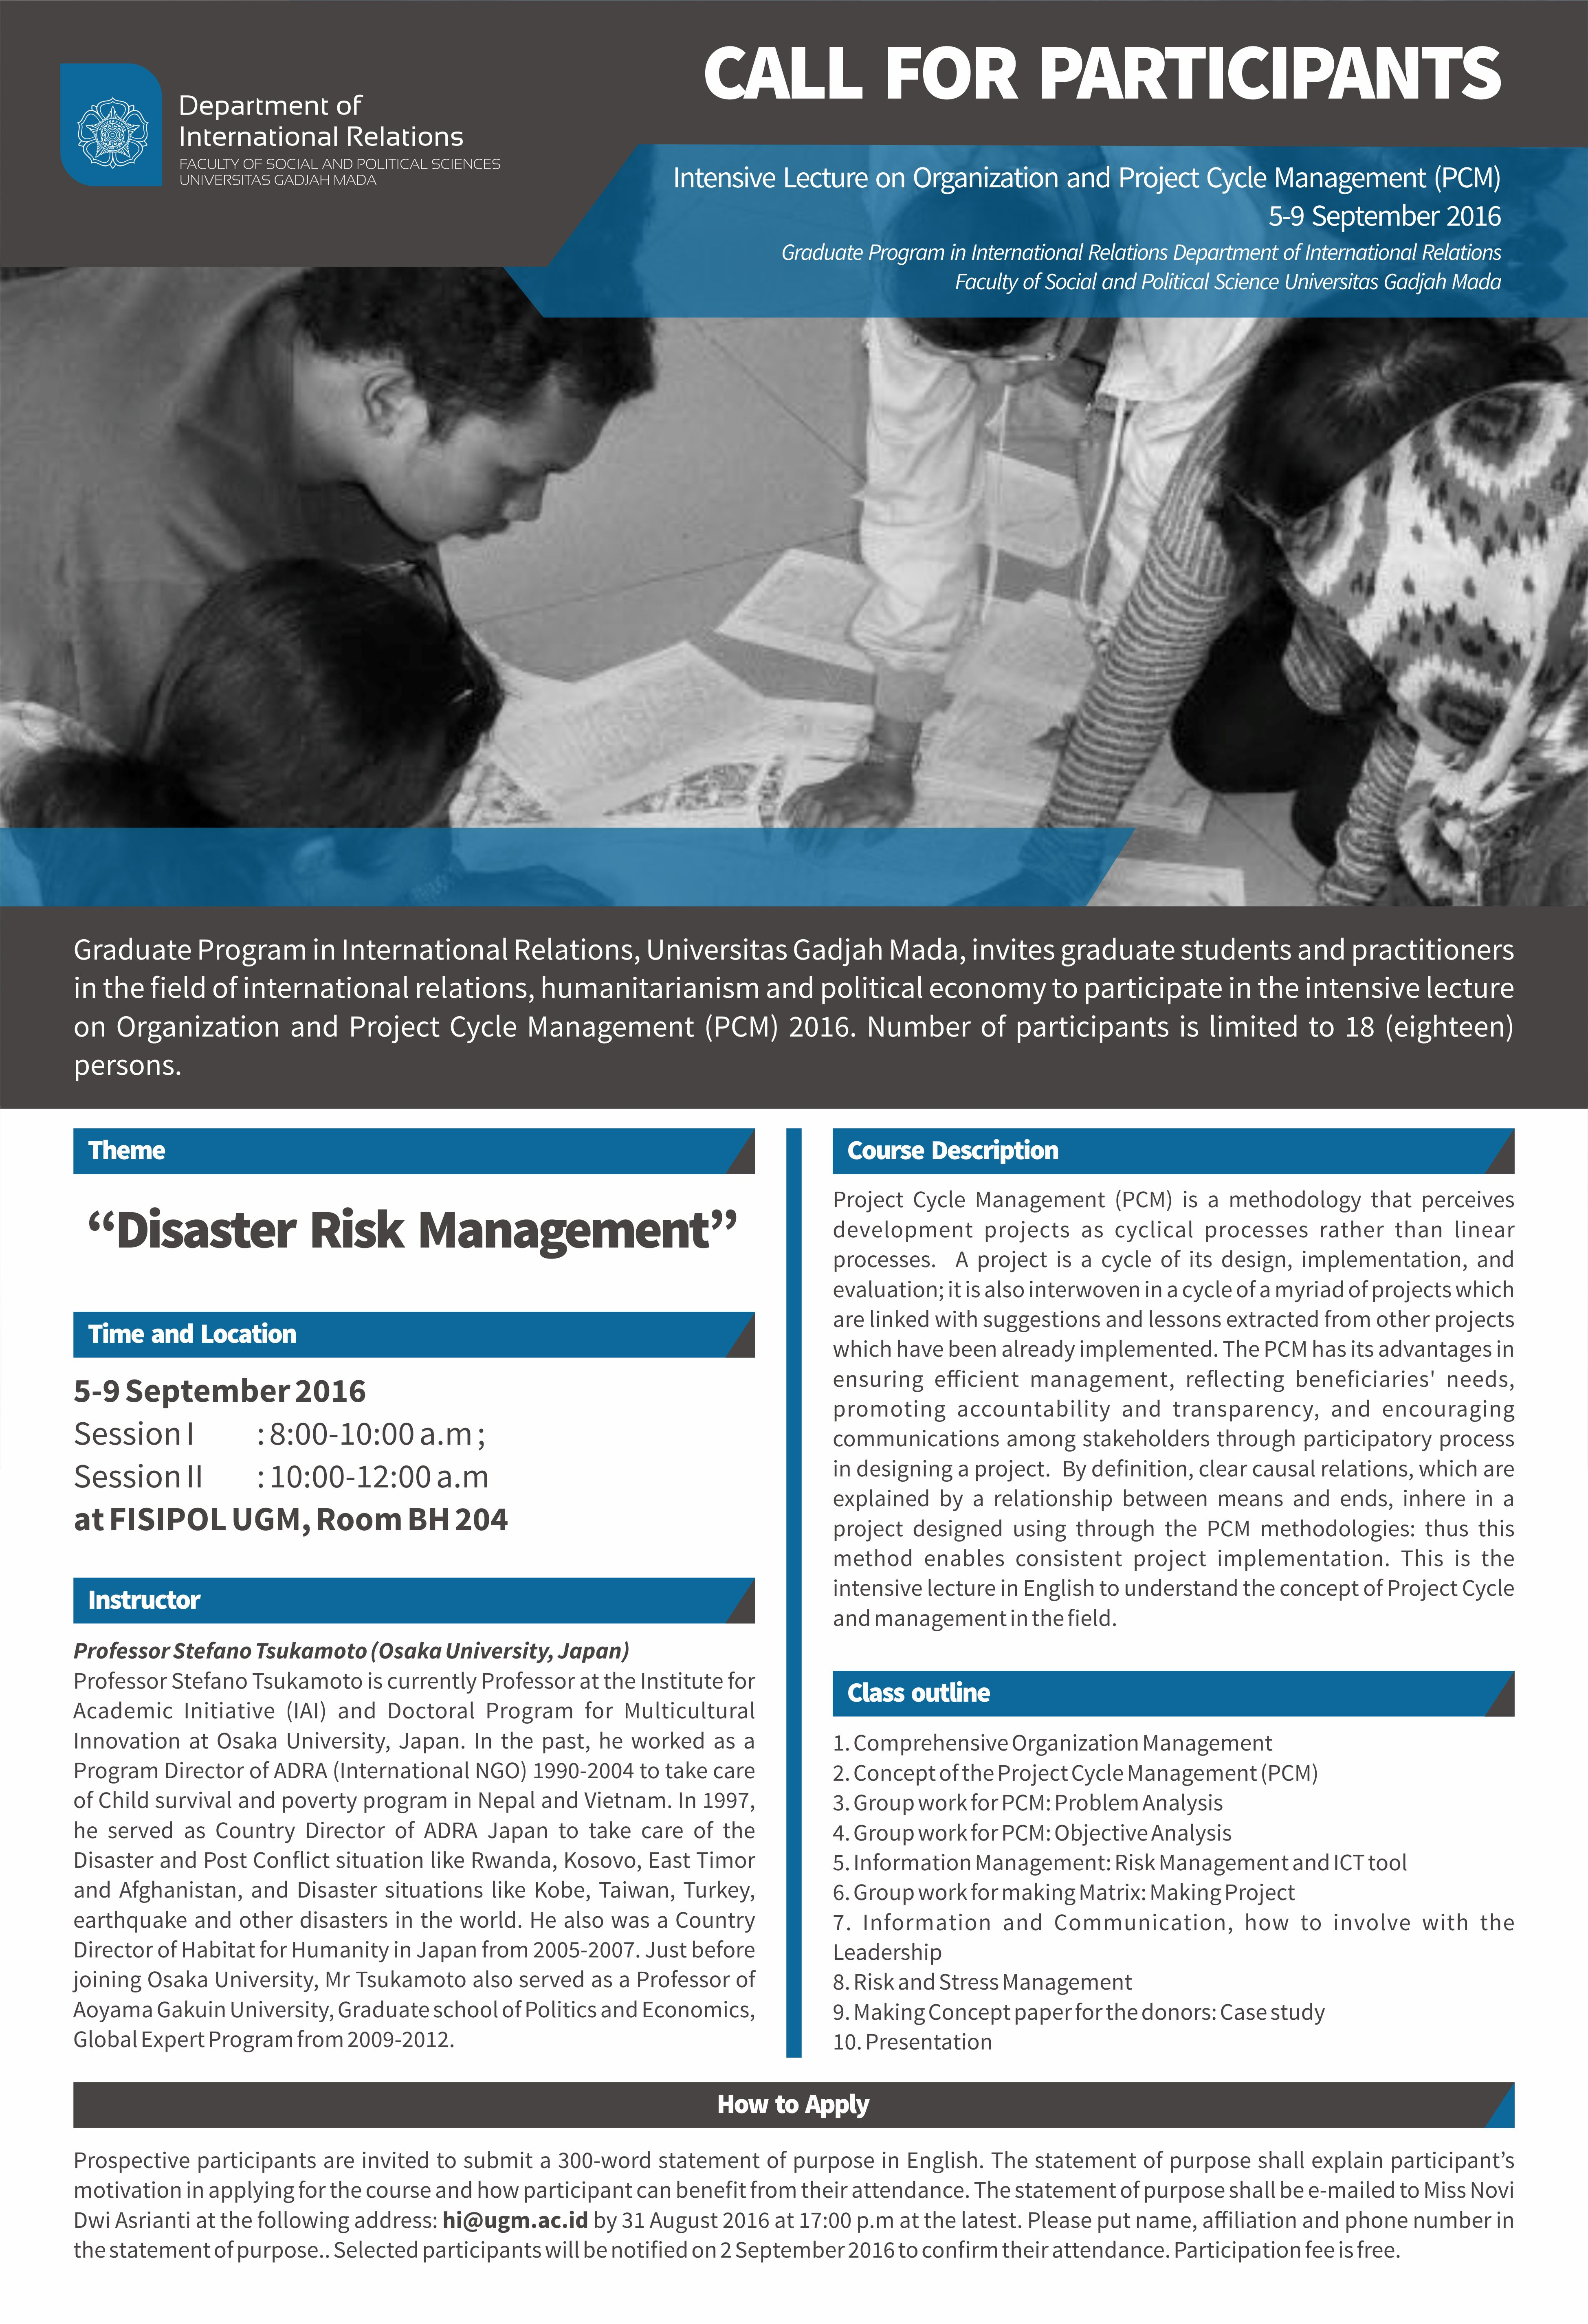 (S2) CALL FOR PARTICIPANTS Intensive Lecture on Organization and Project Cycle Management (PCM), 5-9 September 2016